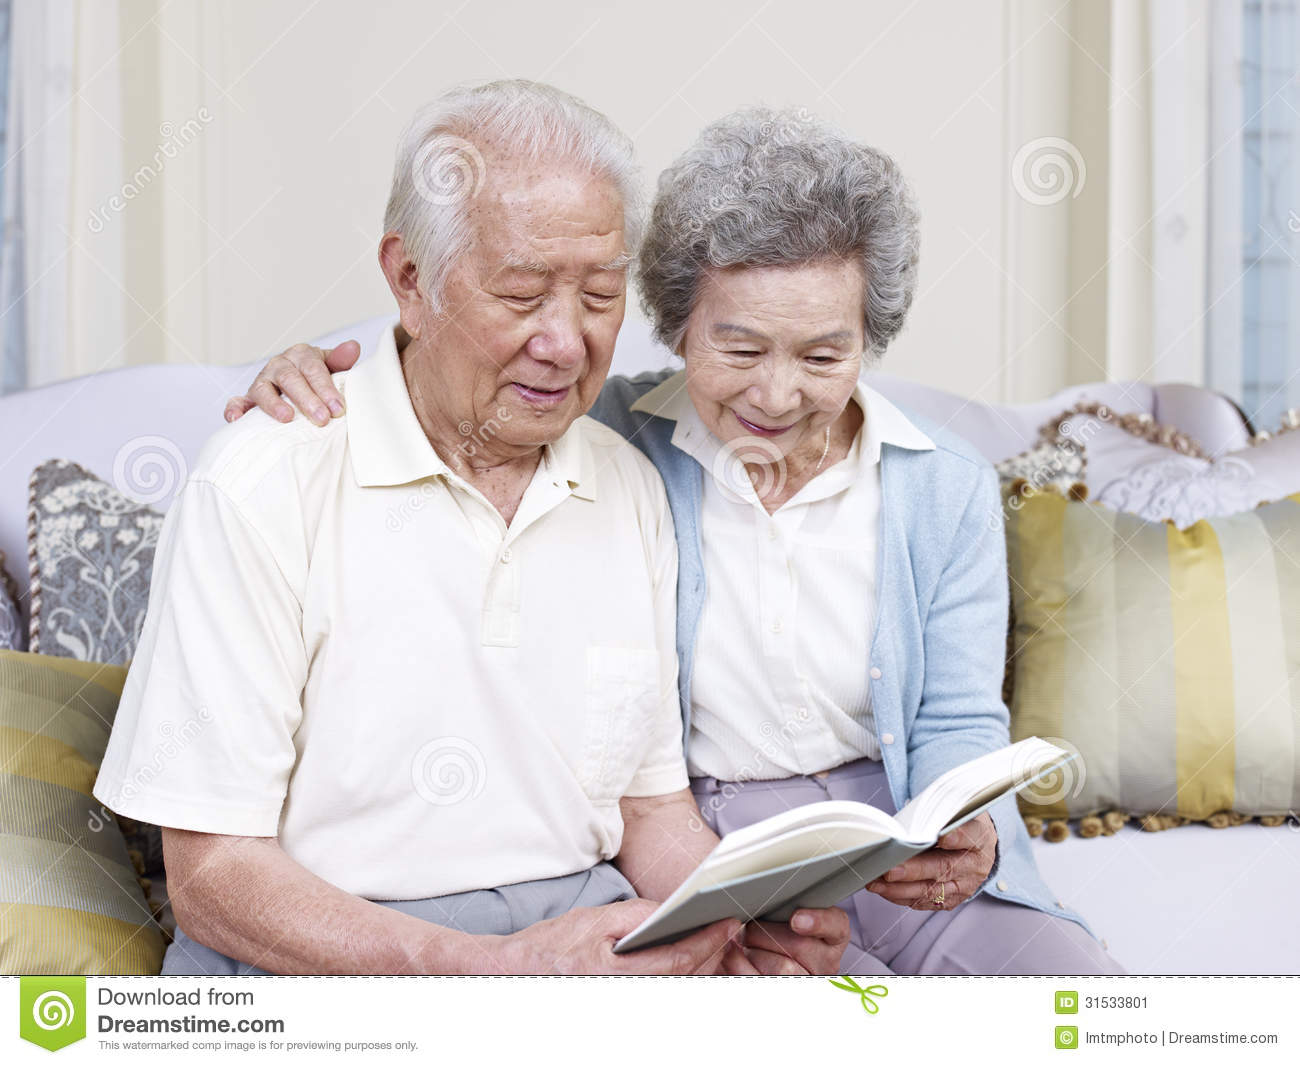 Does China have an aging problem?